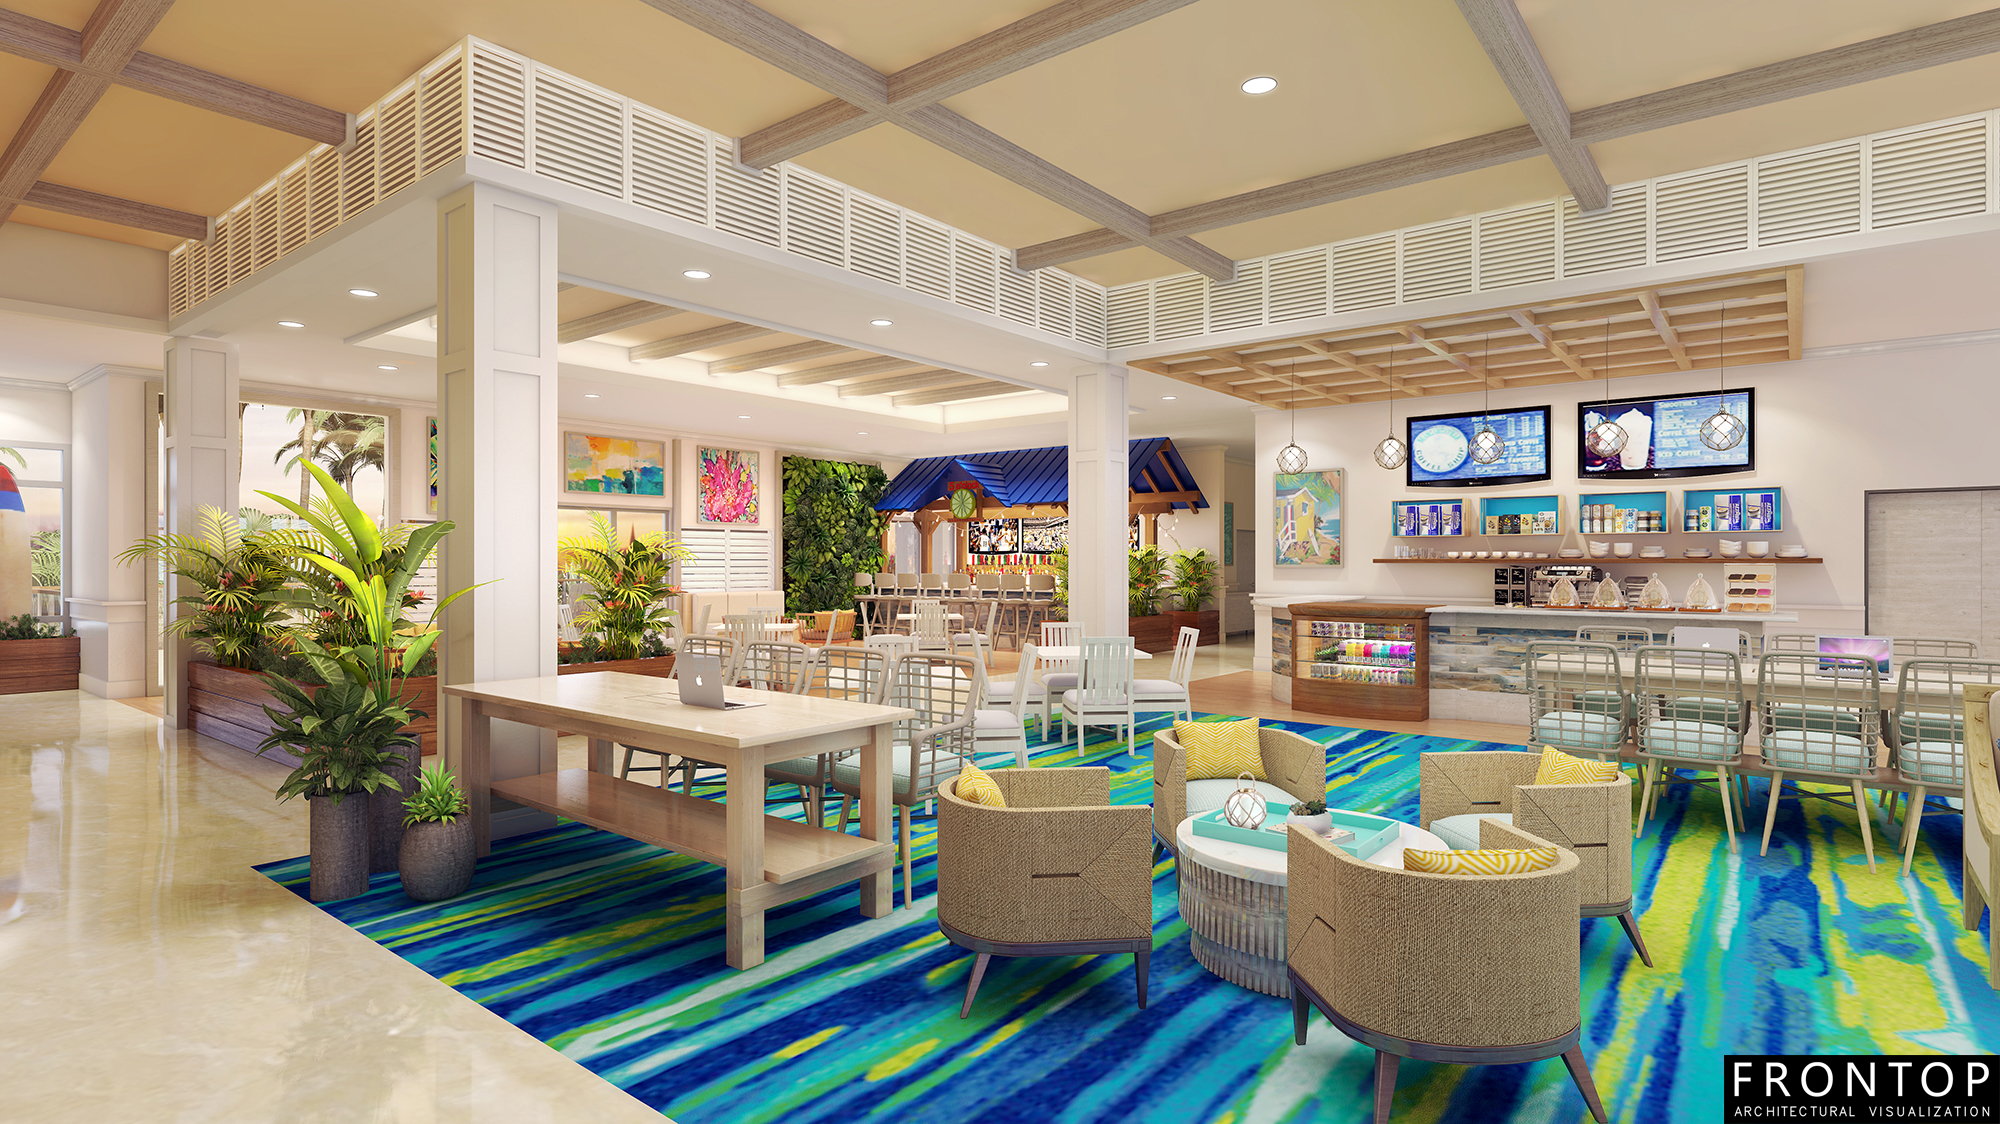 Reasonable price Interior Perspective -